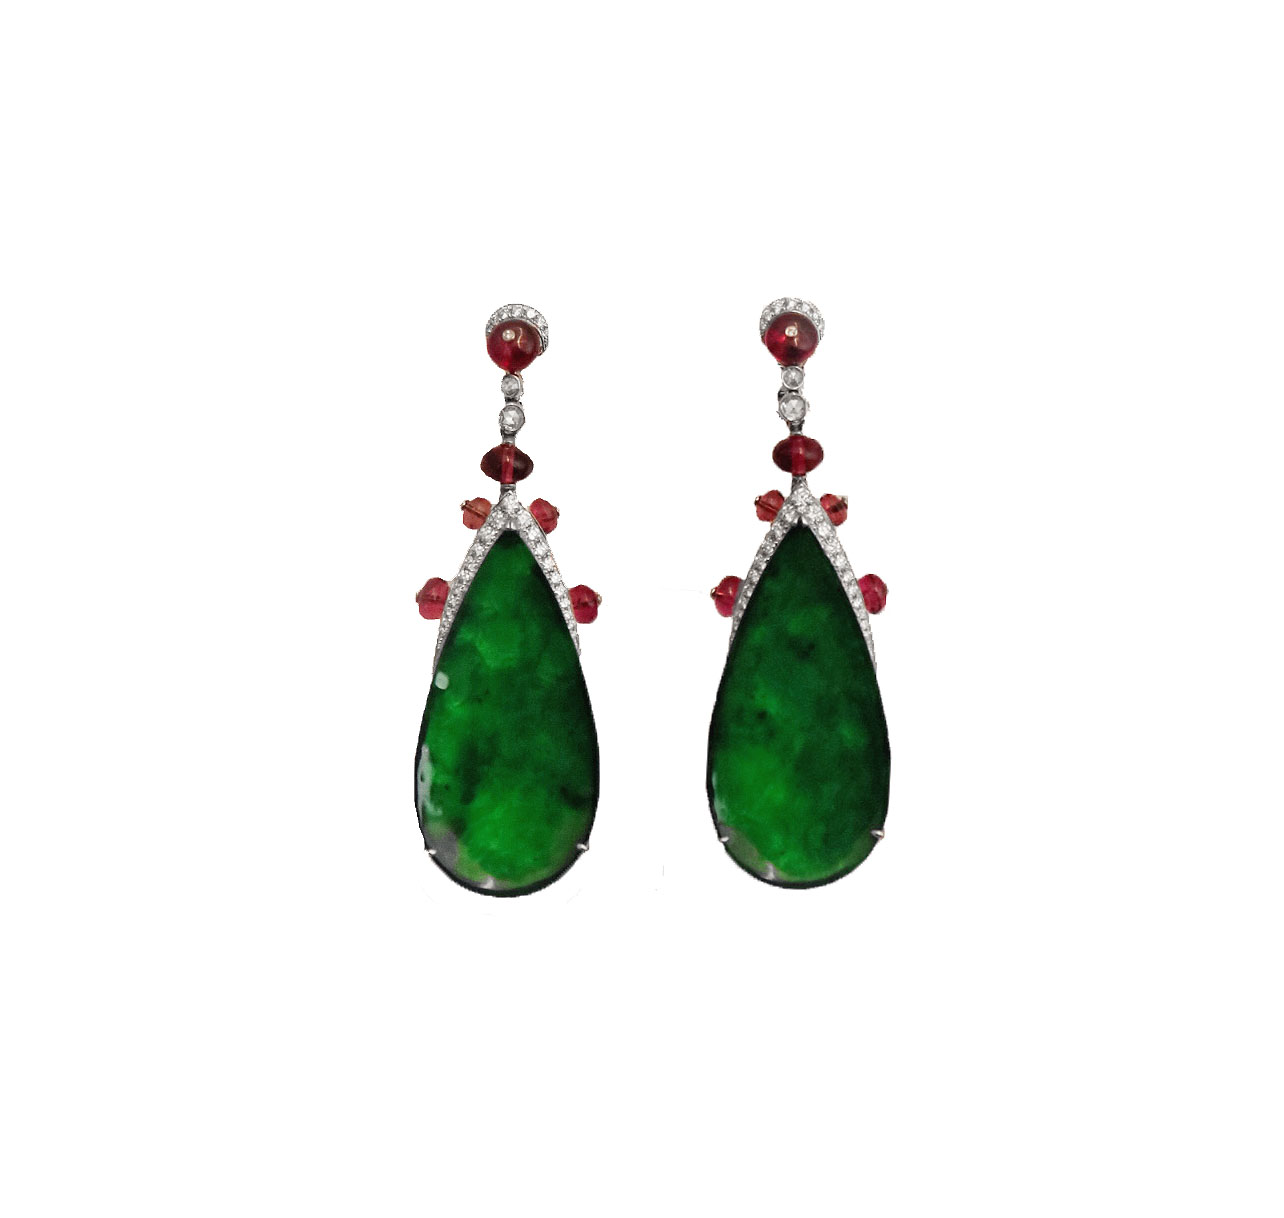 Imperial Jade with Rubellites Diamond Earrings